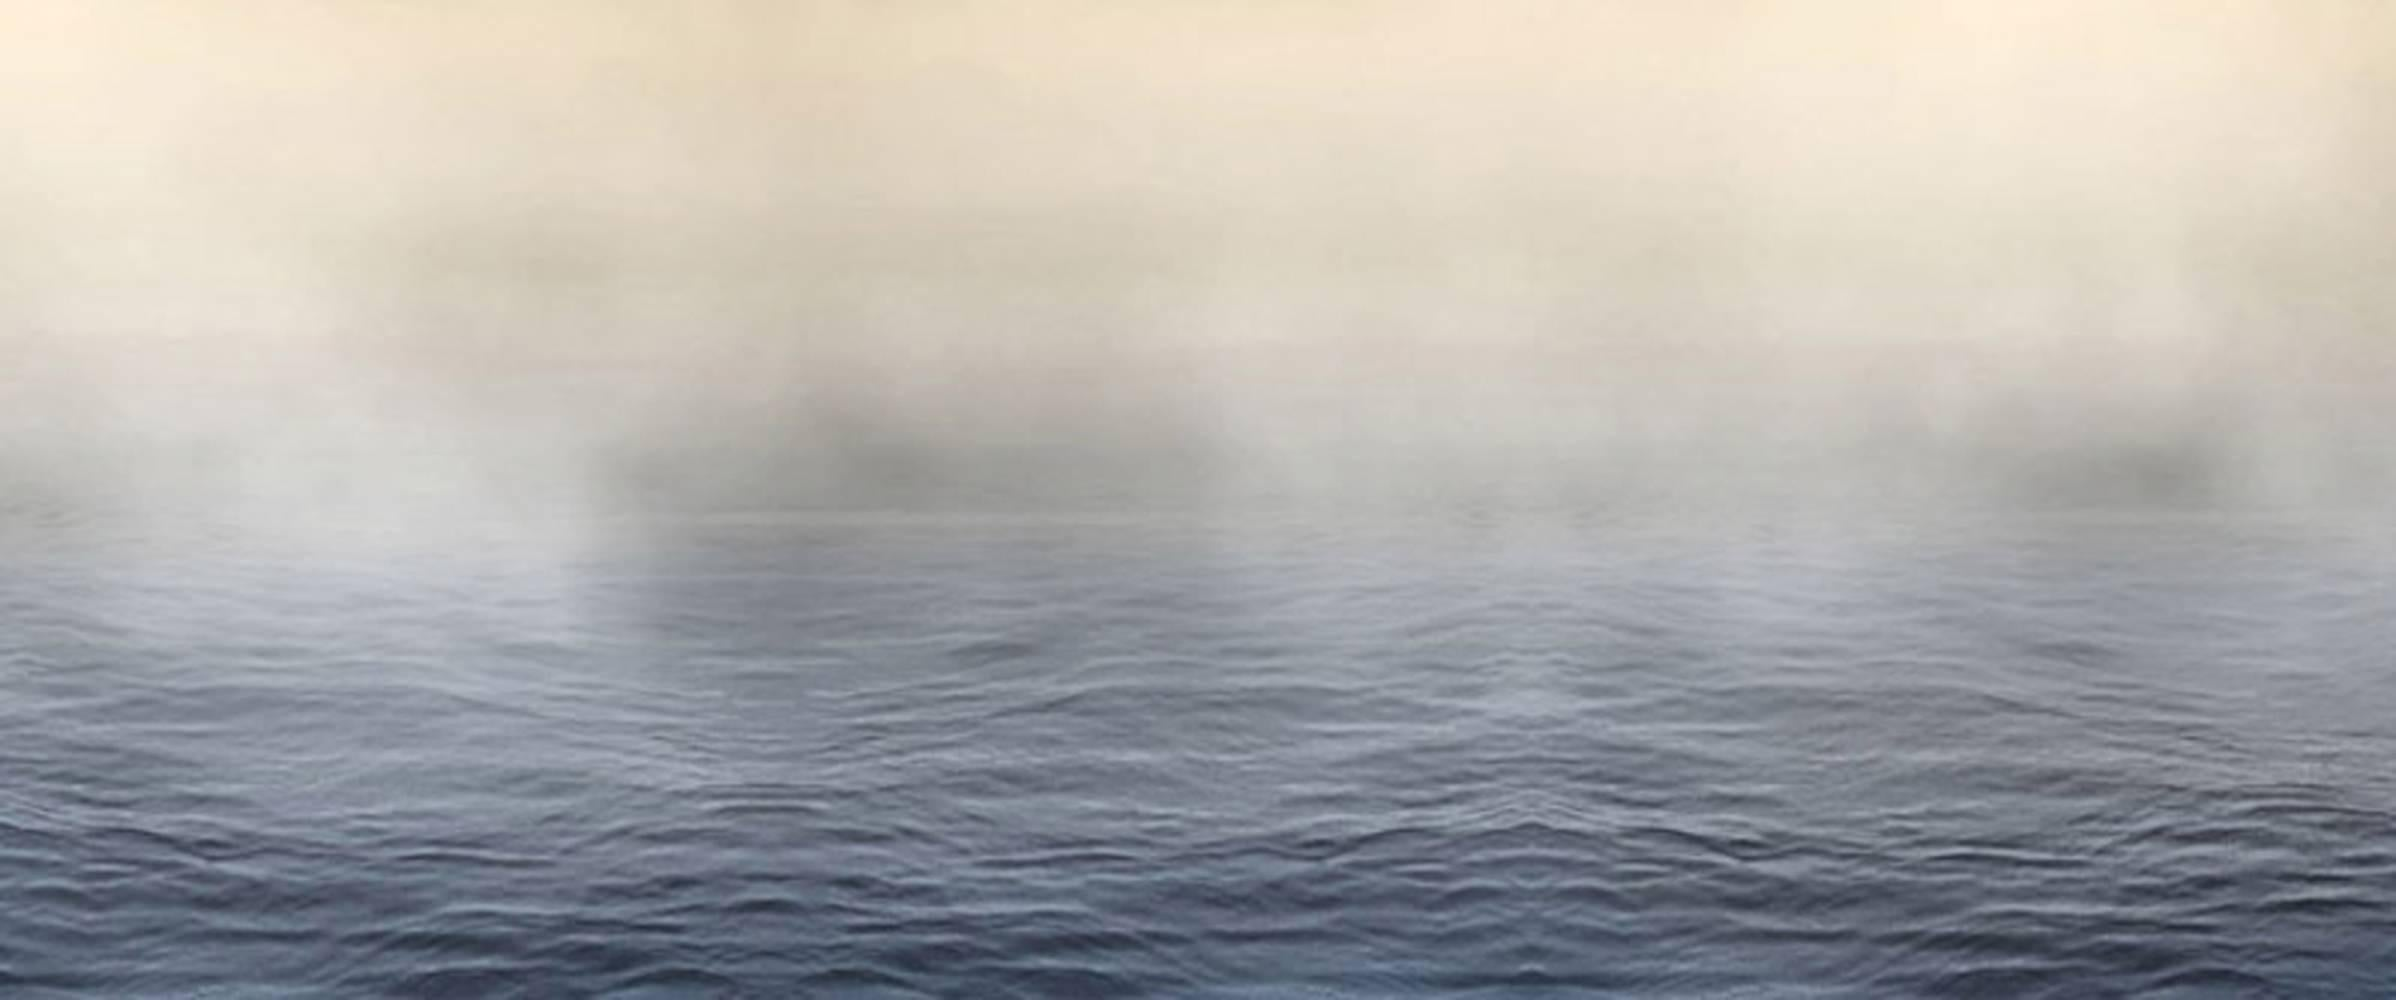 Horizon Fields I (Minimal Abstracted Ocean View with Rising Fog)